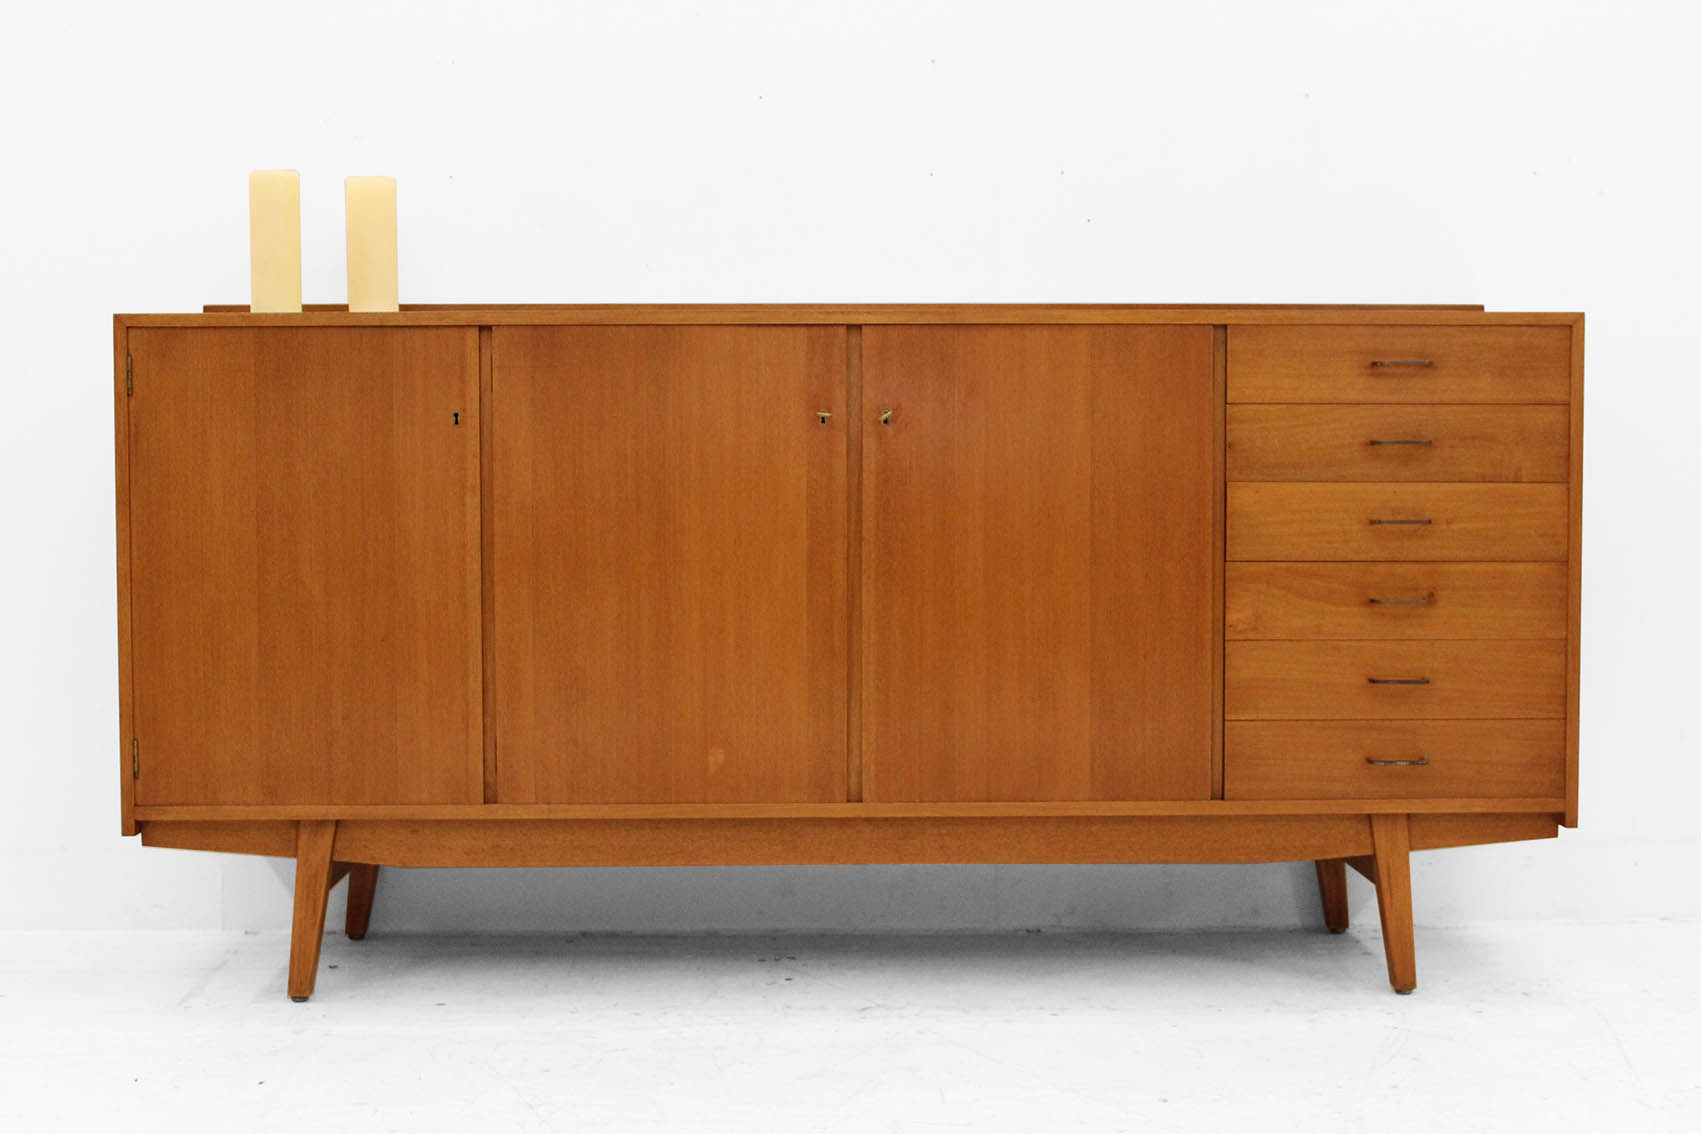 Late fifties lowboard by Van den Berghe Pauvers. Nutwood.